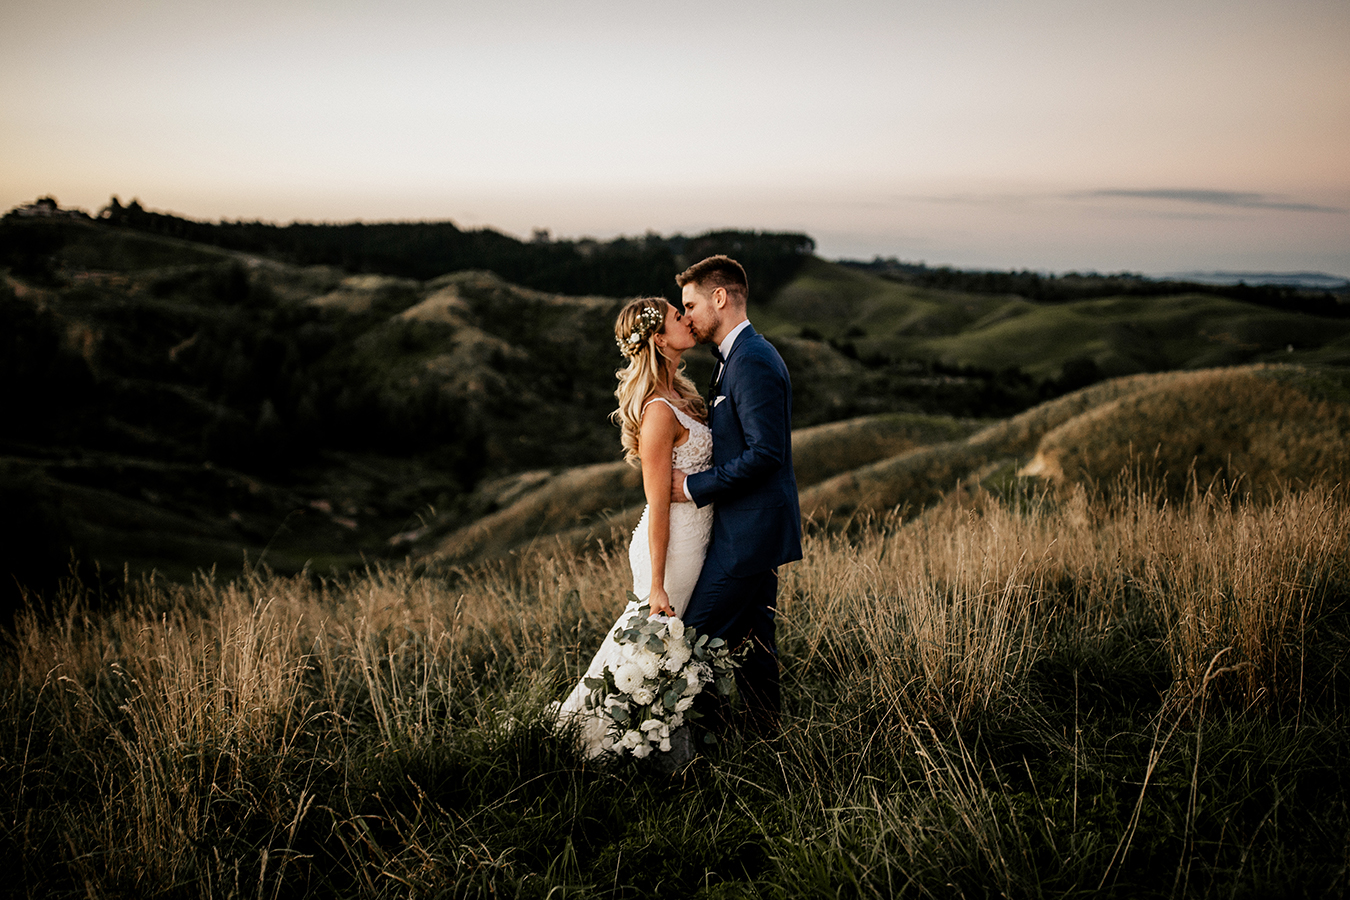 New Zealand Wedding Photographer Auckland, Queenstown, South Island, North Island